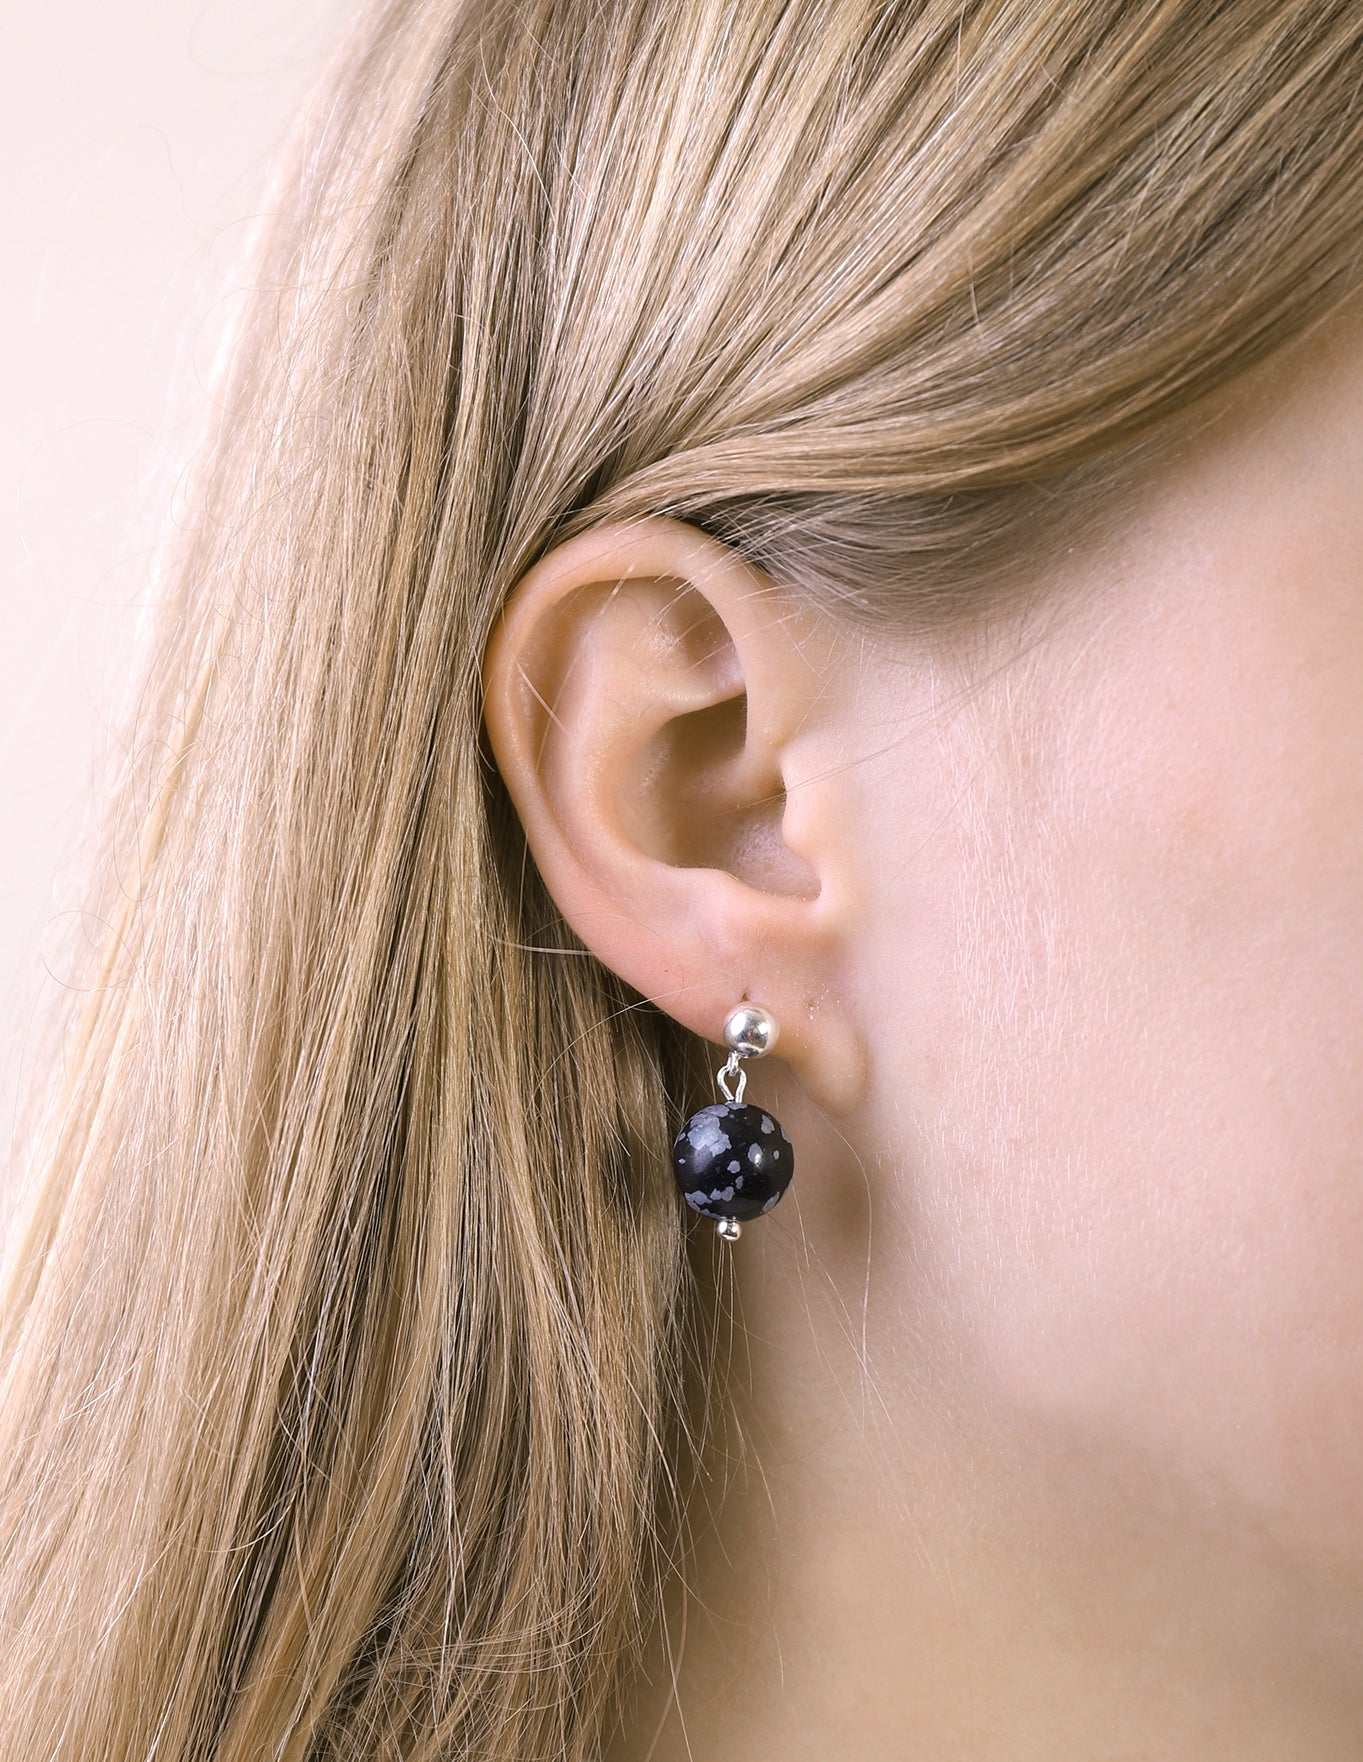 llayers jewelry dangly earrings magnetic obsidian stone boucles oreilles pierre obsidienne